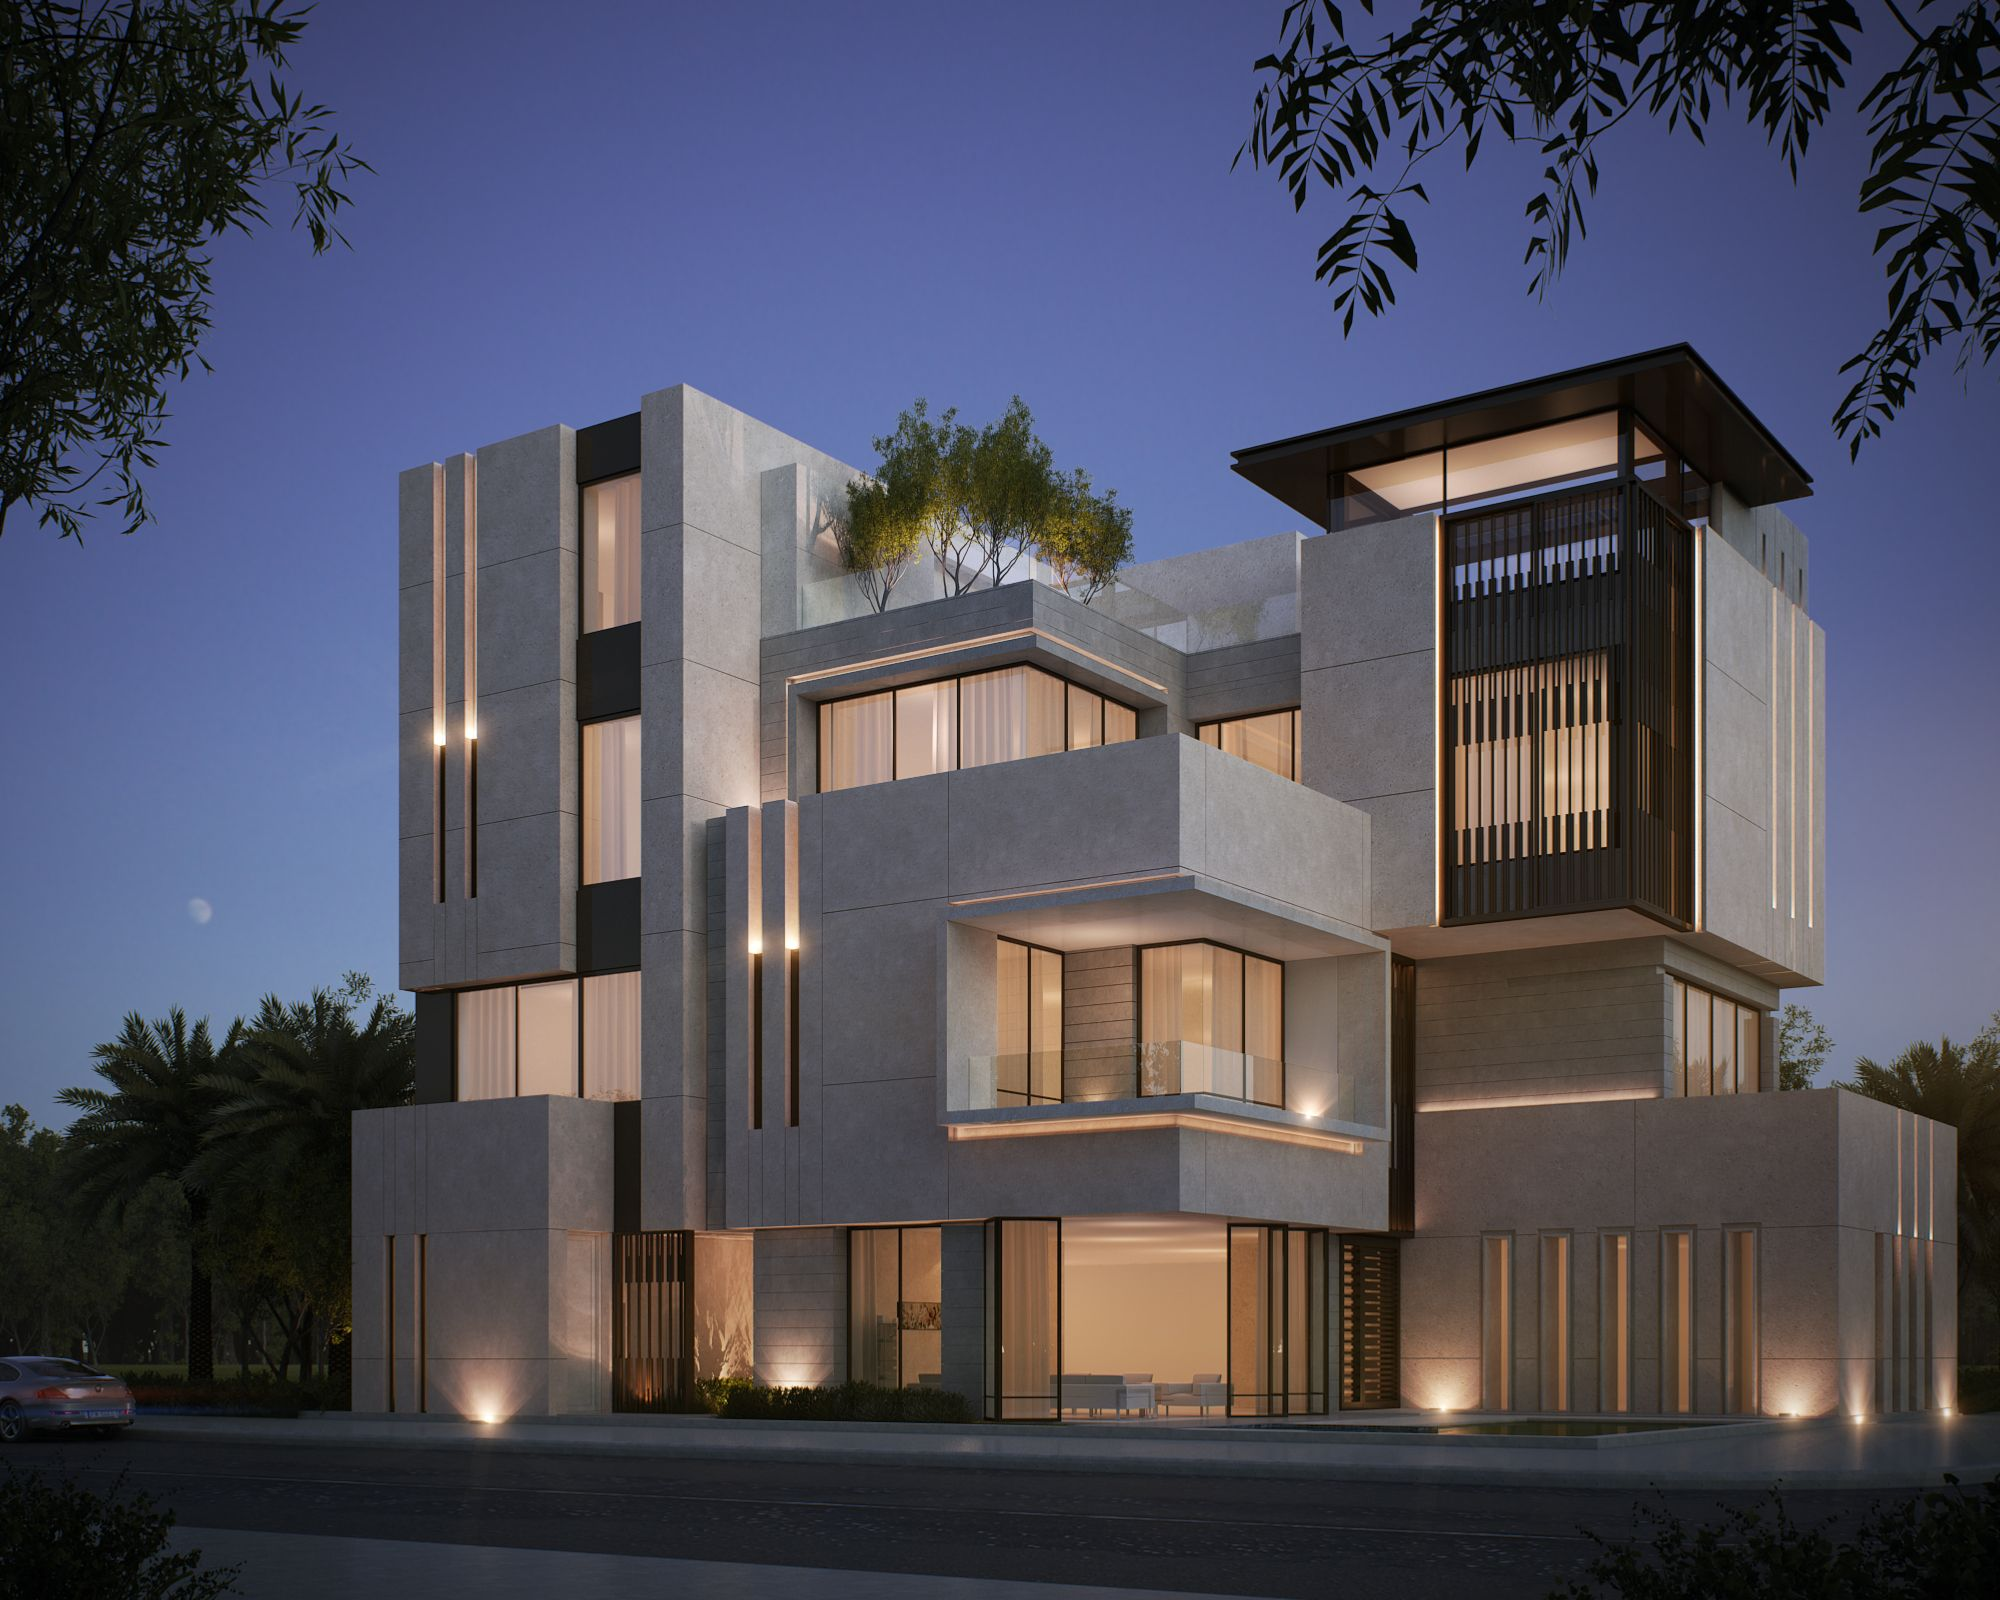 Private villa 500 m kuwait sarah sadeq architects sarah for Modern house design materials